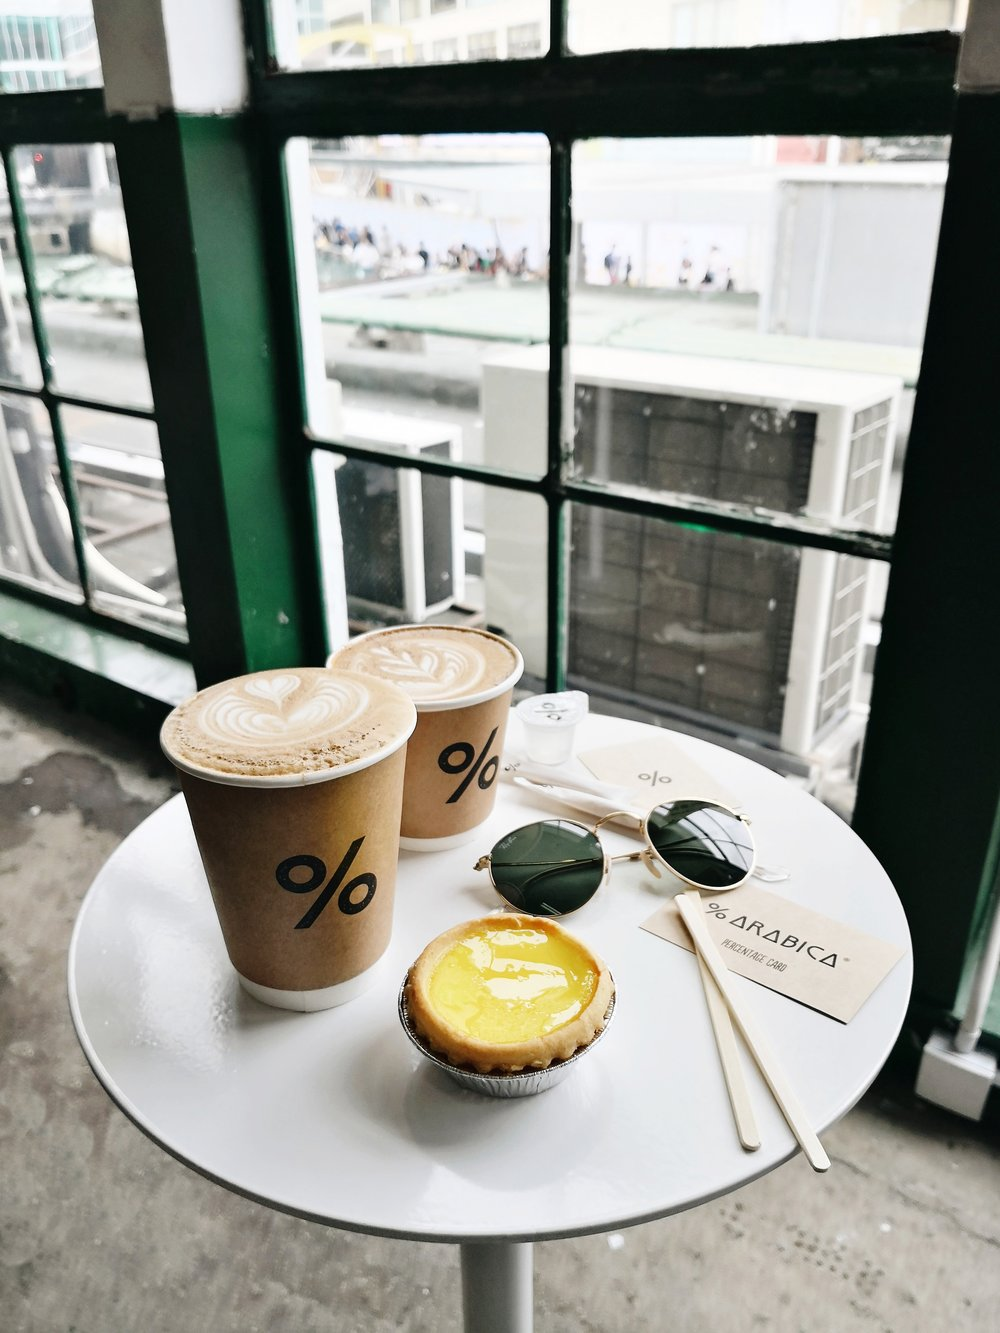 on the table - caffe latte (+ egg tart from Tai Cheong Bakery)